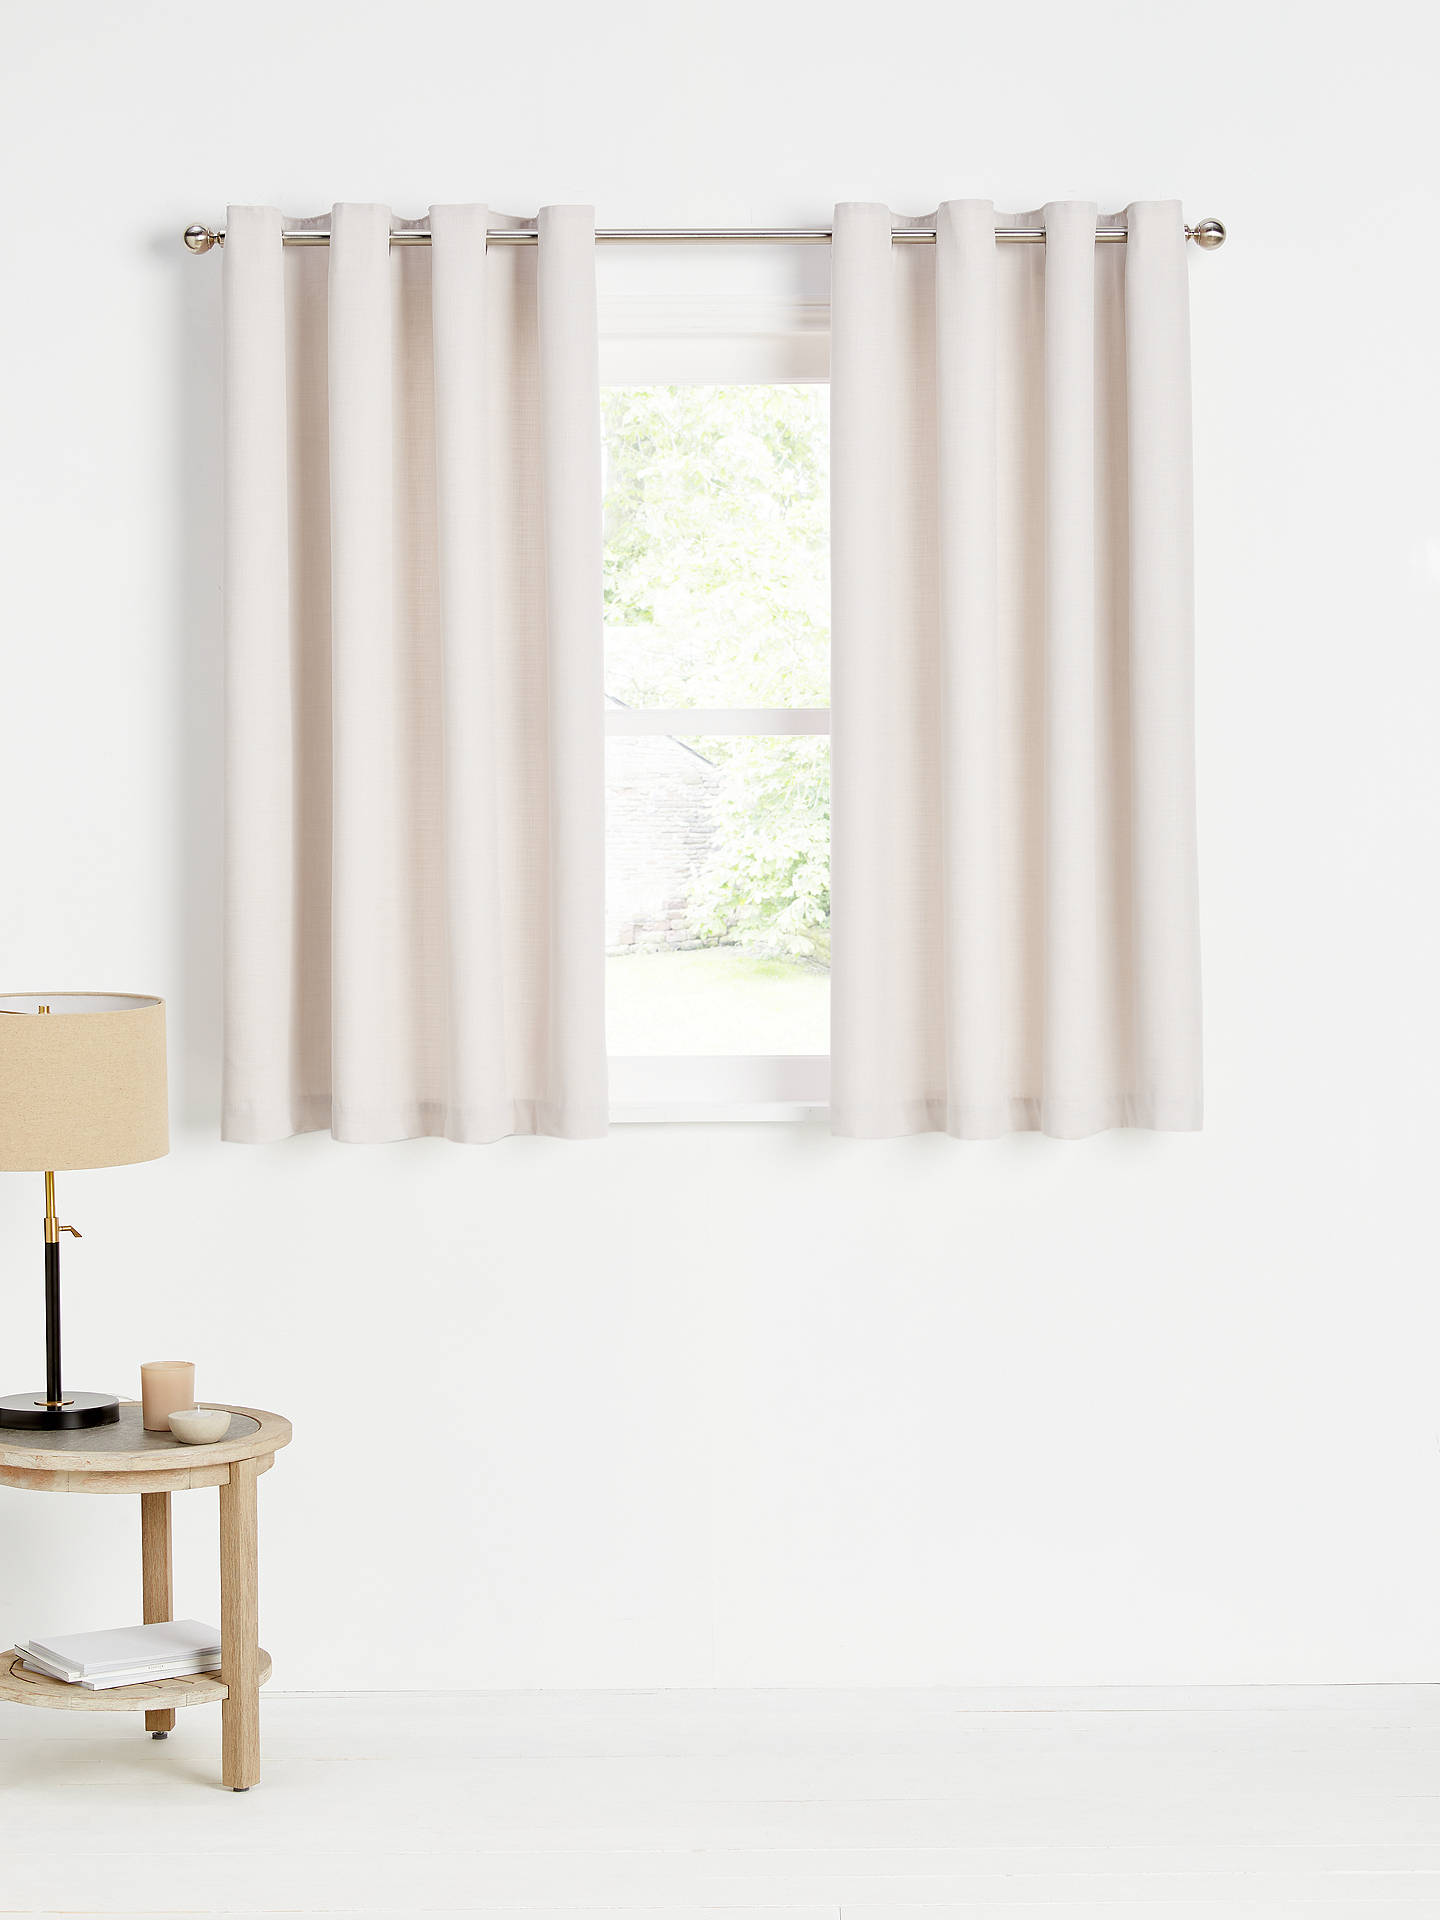 Buy John Lewis & Partners Barathea Pair Lined Eyelet Curtains, Wisteria, W228 x Drop 228cm Online at johnlewis.com